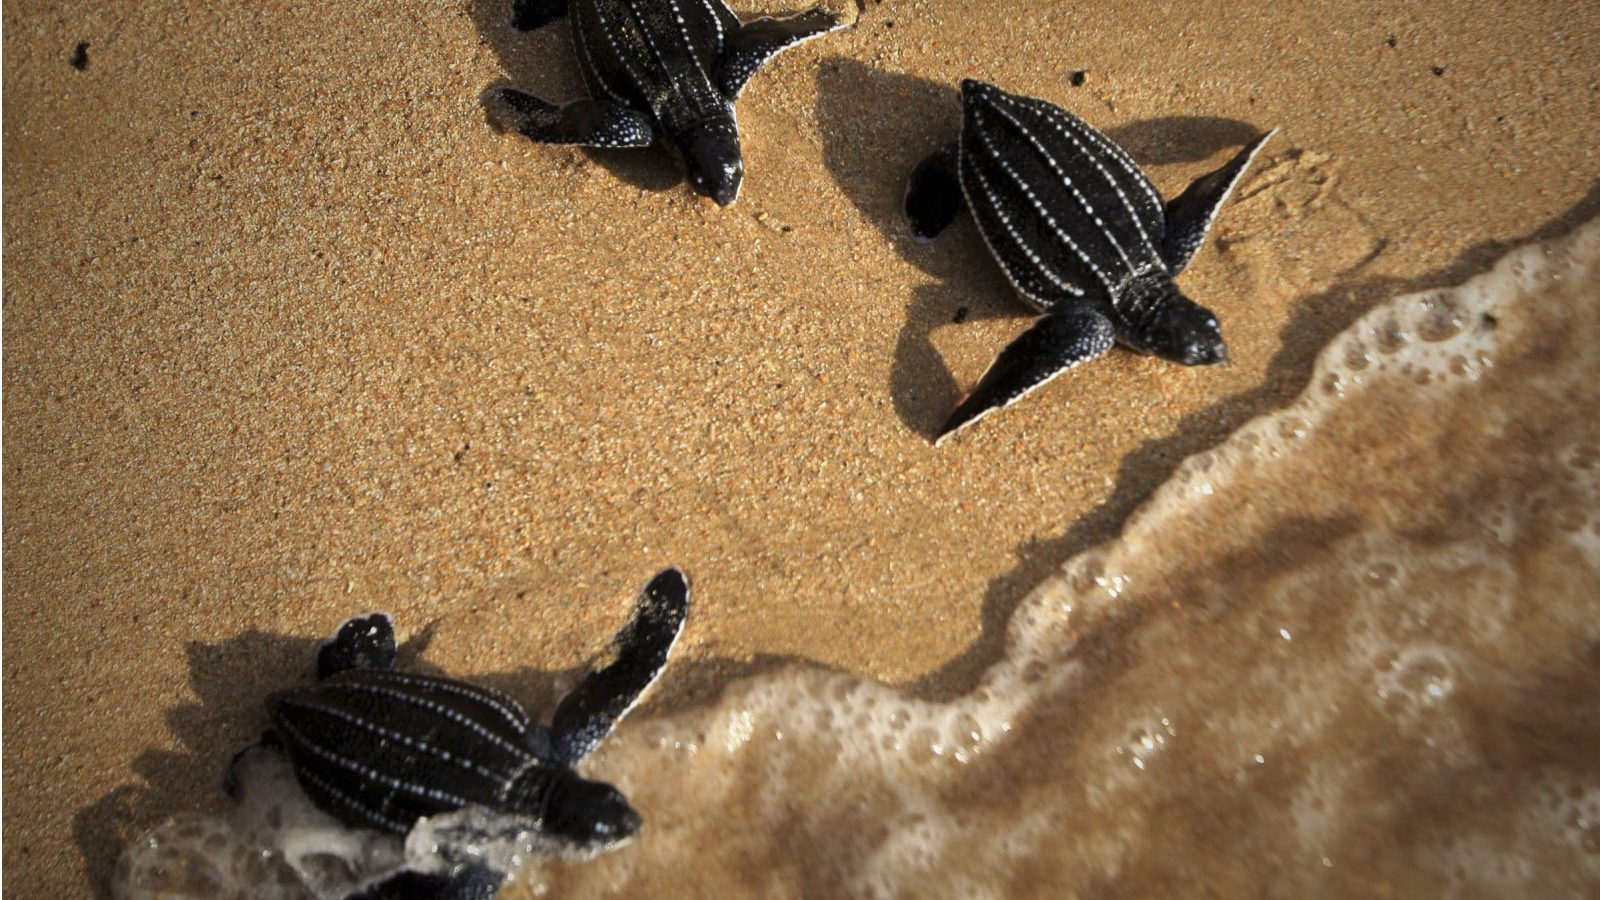 Baby turtles make their way into the ocean upon their release during a campaign to save sea turtles on Lampuuk beach in Aceh Besar, Indonesia, Monday, April 8, 2013. Sea turtles in Indonesia have long suffered from poaching for their meat, fat, shells and eggs.